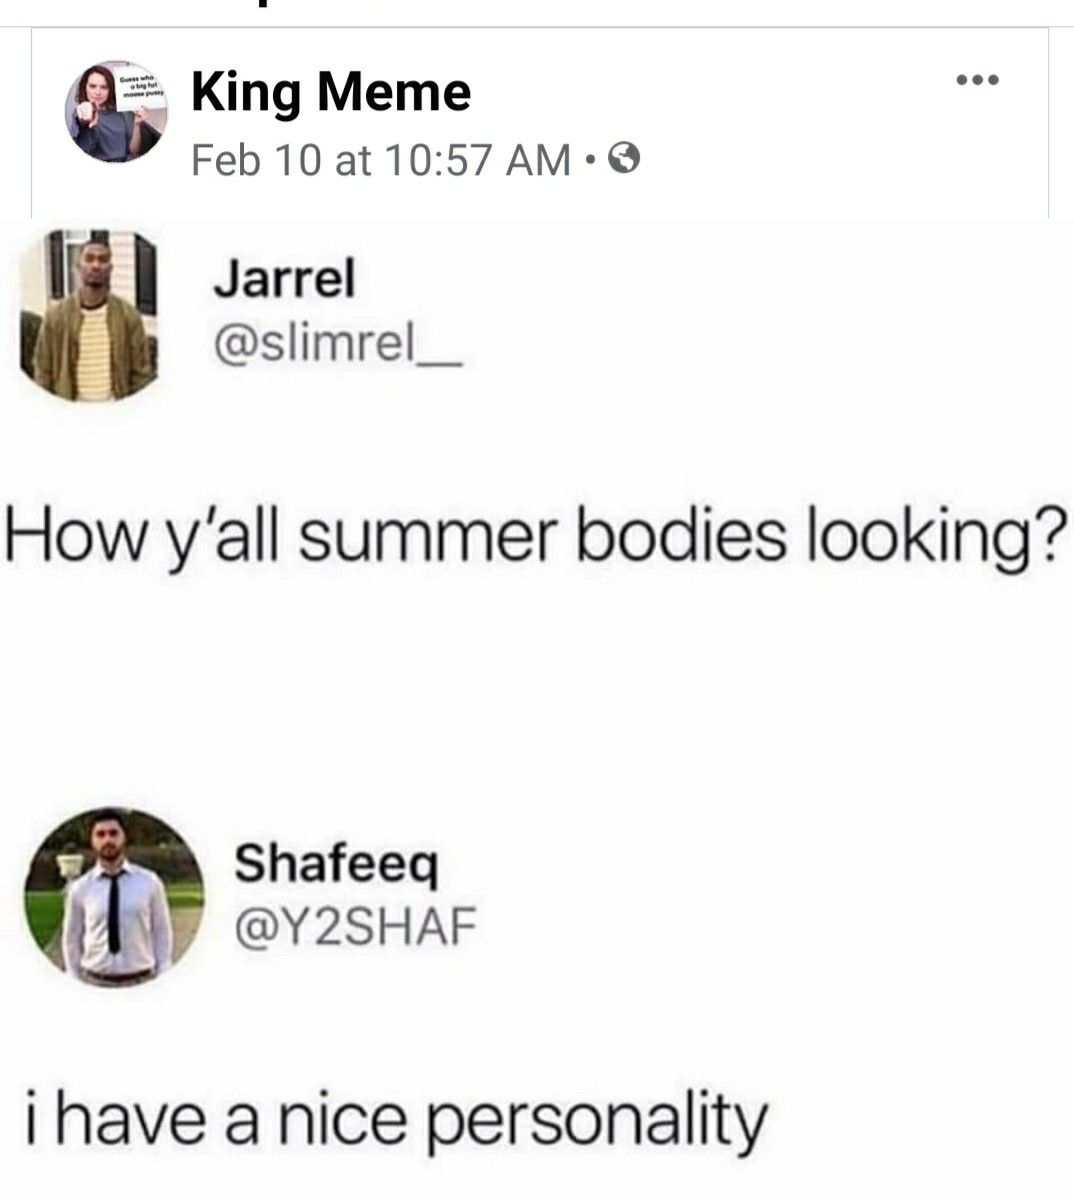 Pin By Carla Chipman On Funny Nice Personality King Meme Summer Body [ 1200 x 1074 Pixel ]